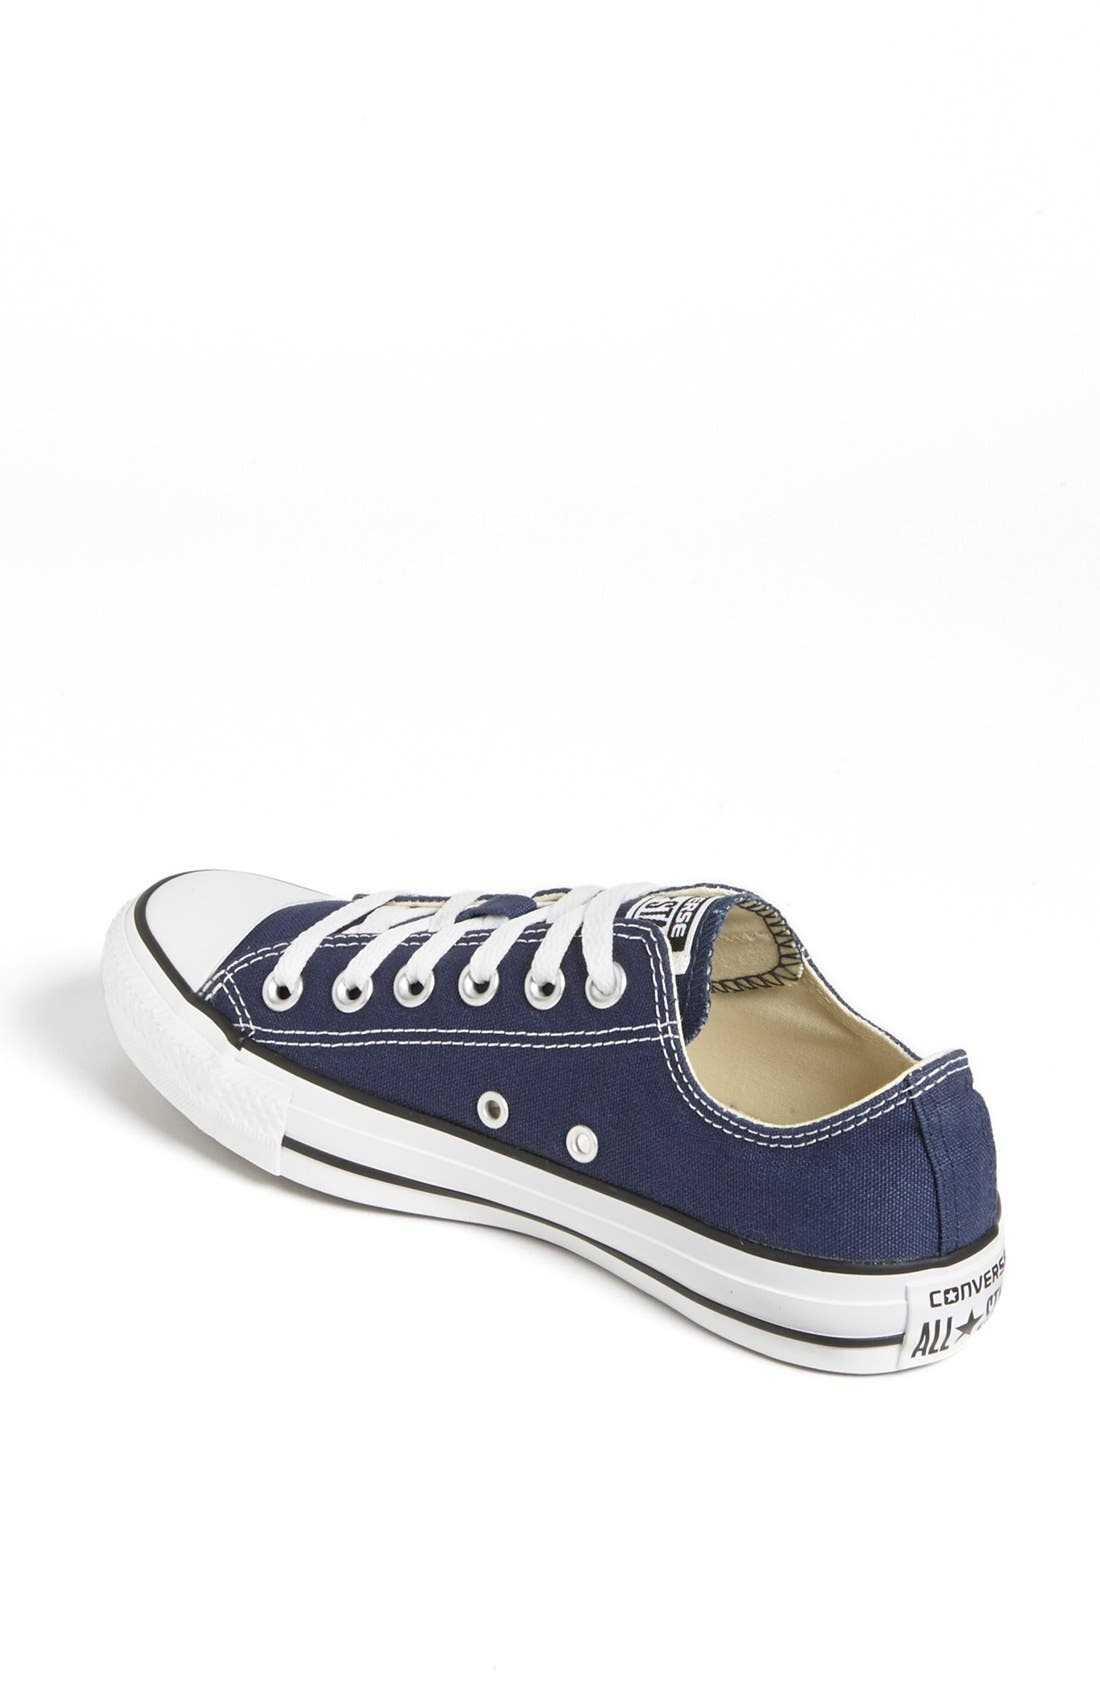 Alternate Image 2  - Converse Chuck Taylor® Low Top Sneaker (Women)